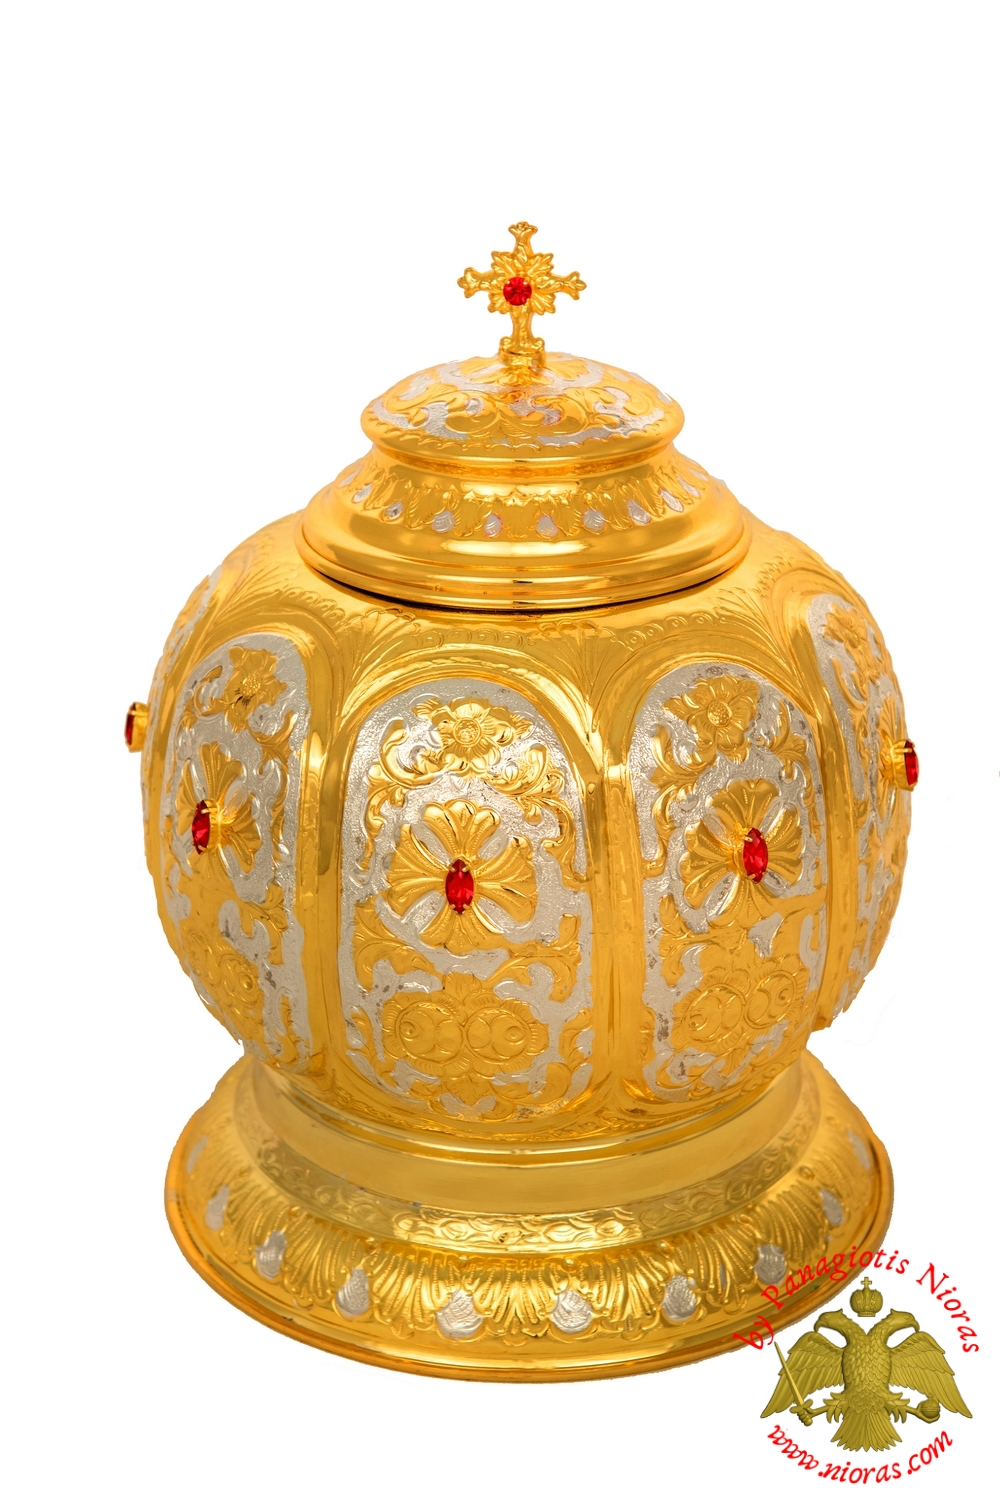 Reliquary Crown Box Gold Plated with Opening Lid h:28 d:21cm